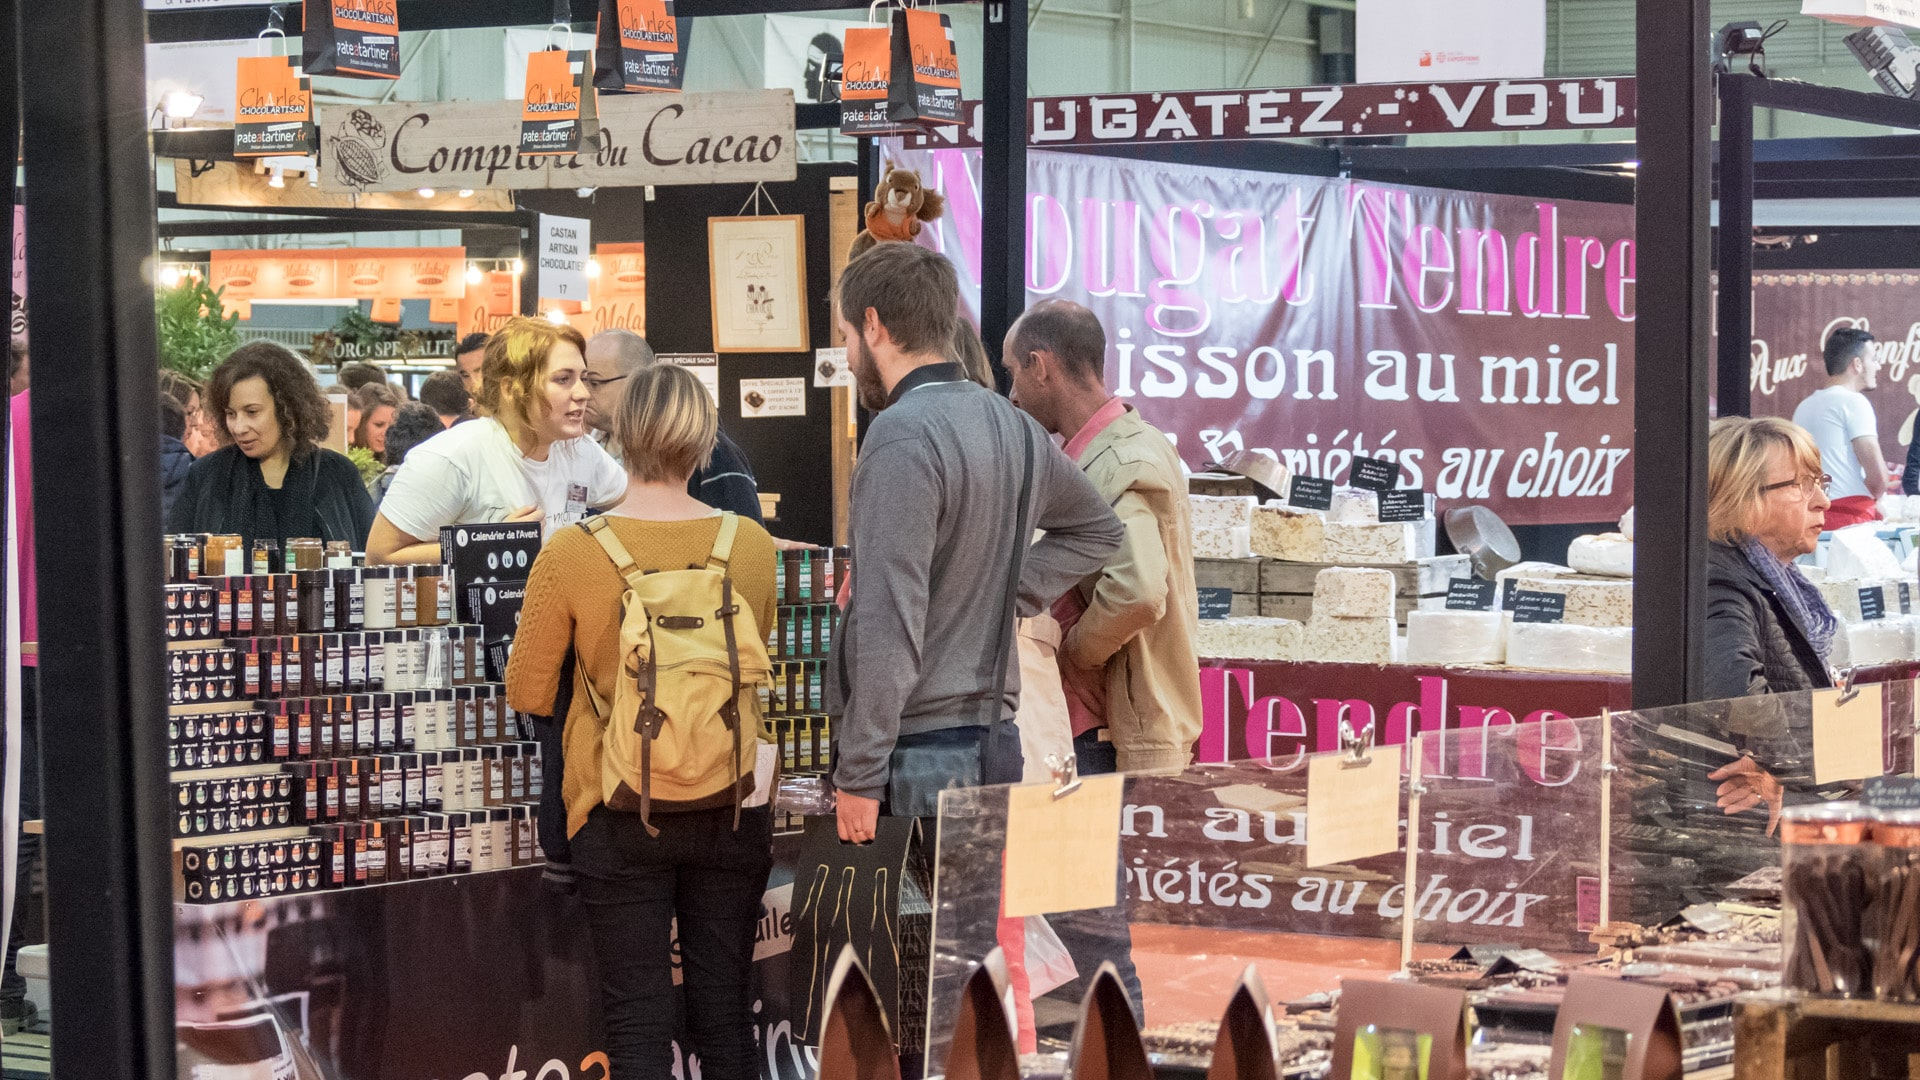 Salon Du Vin Toulouse Le Salon Vins And Terroirs Et Le Salon Chocolat Ce Weekend